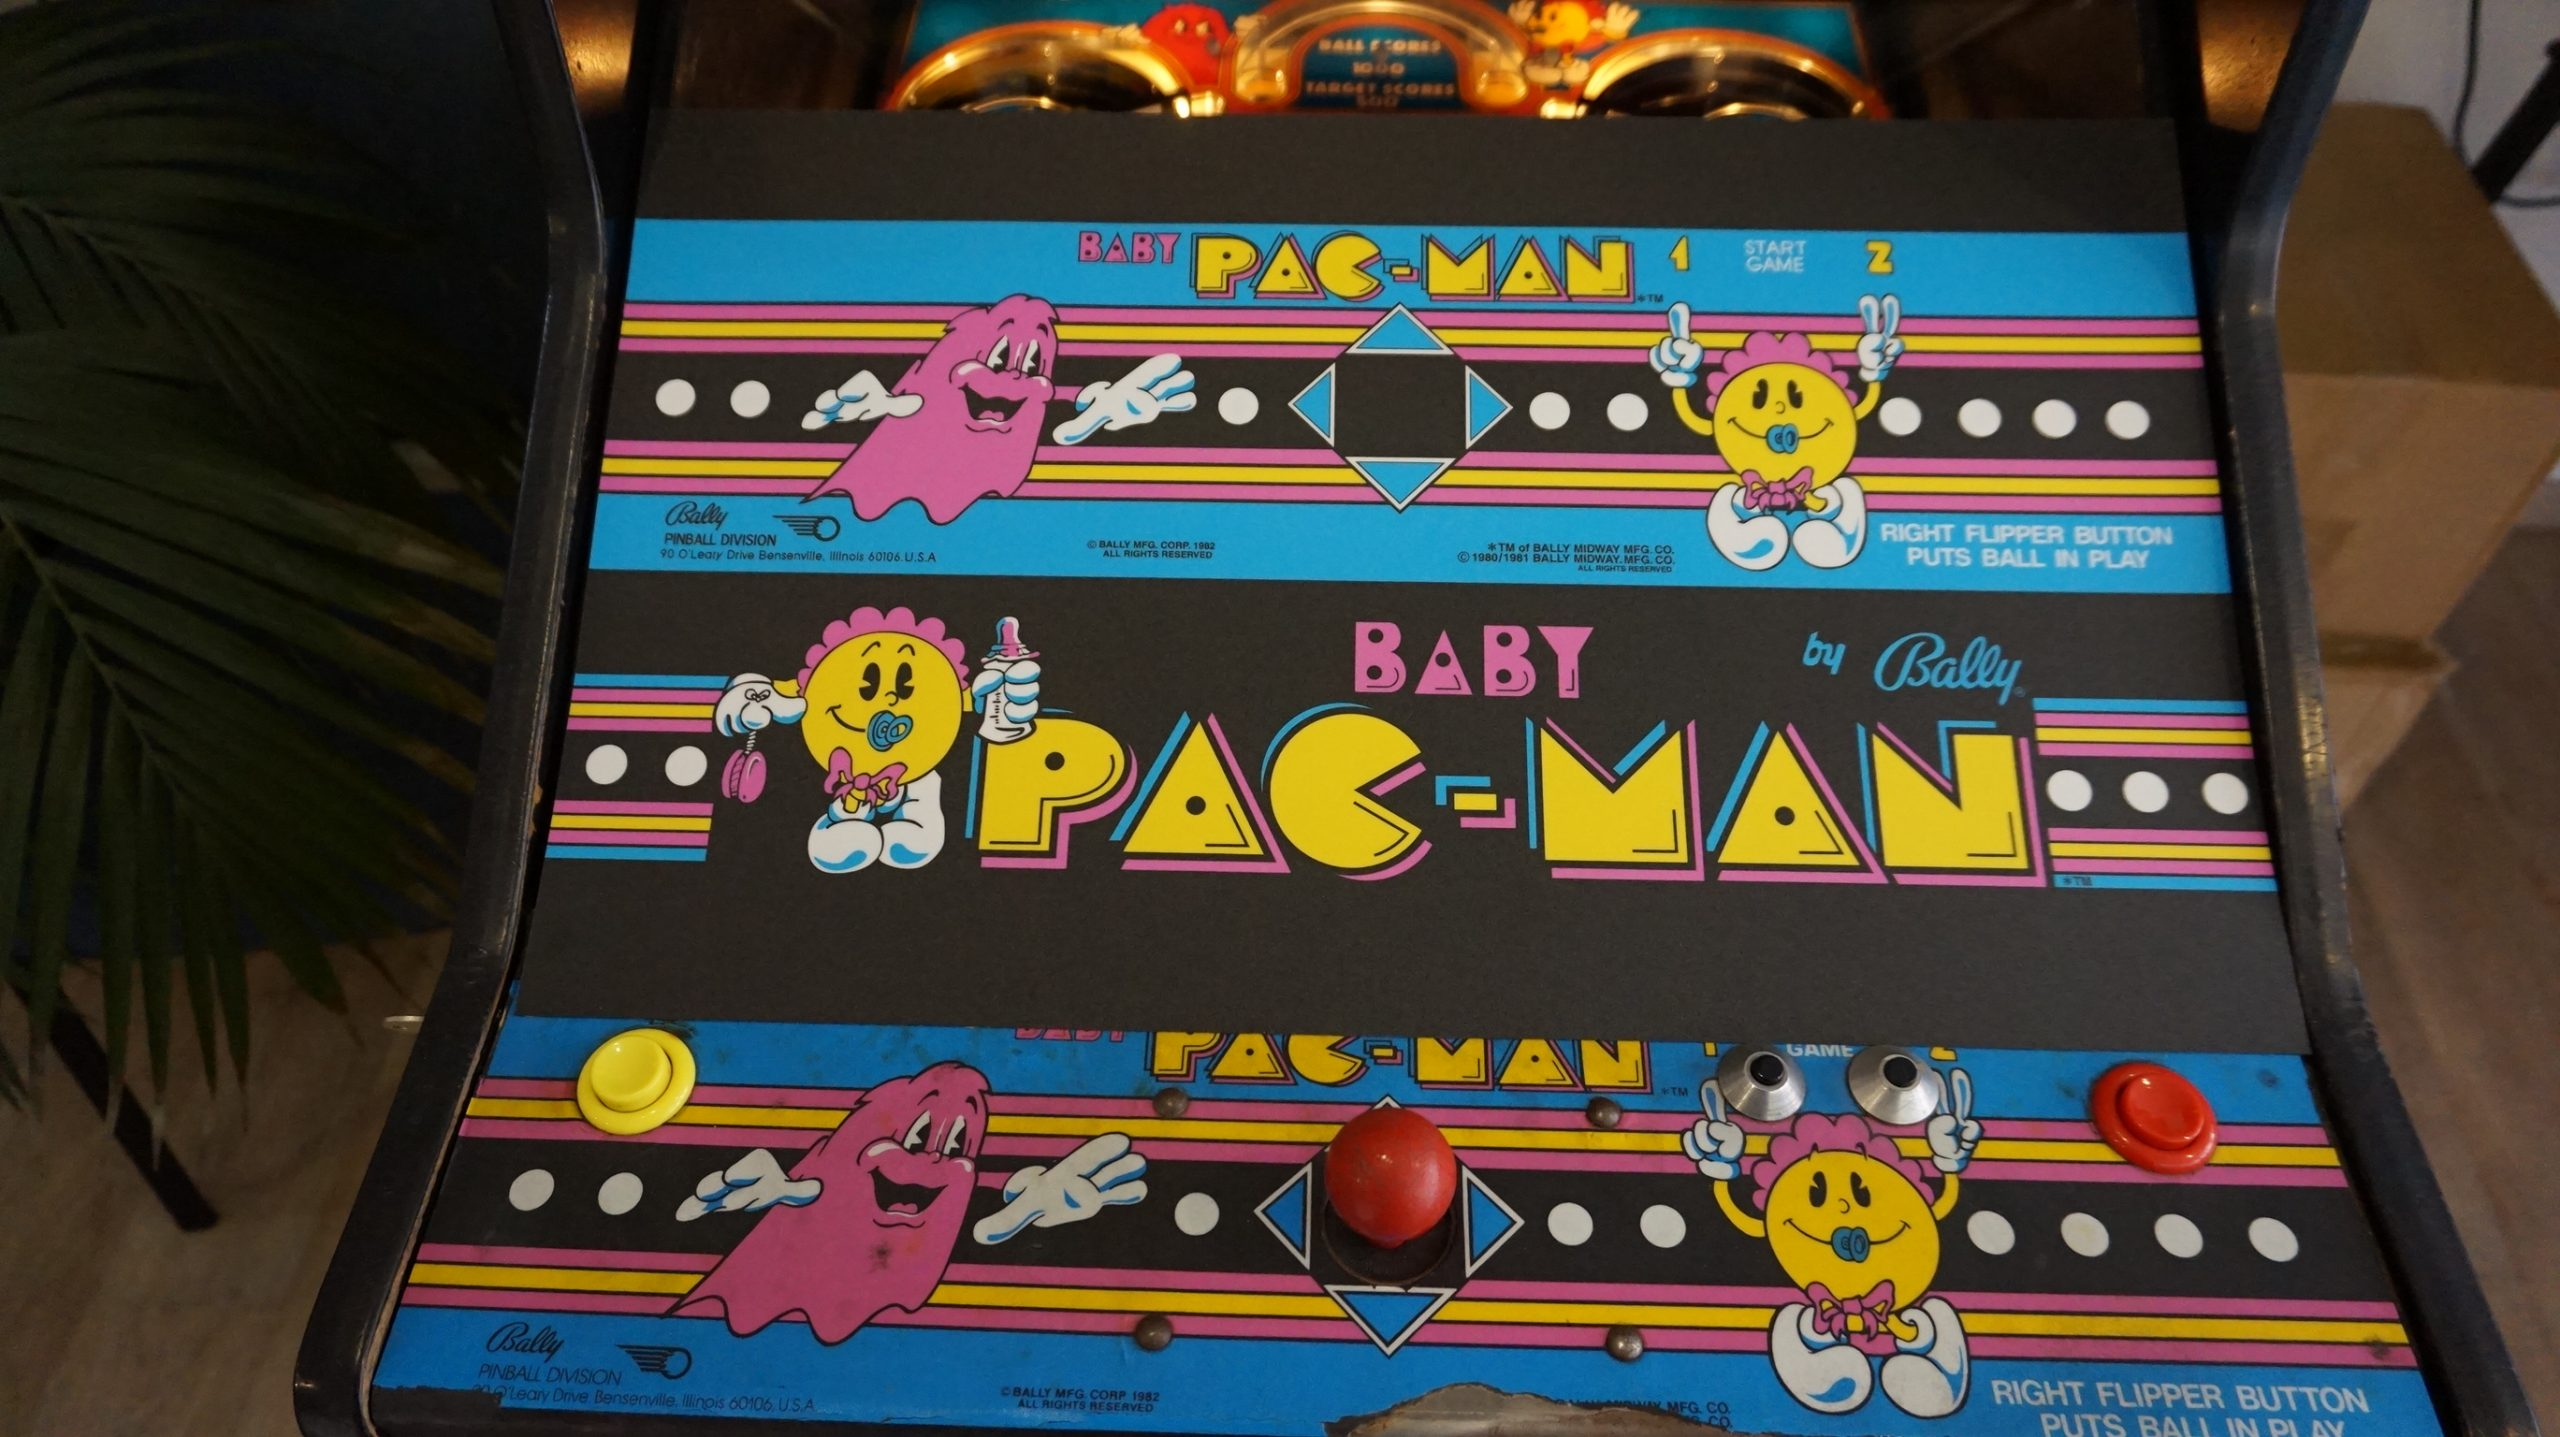 Baby Pac-Man | Bally | Decals